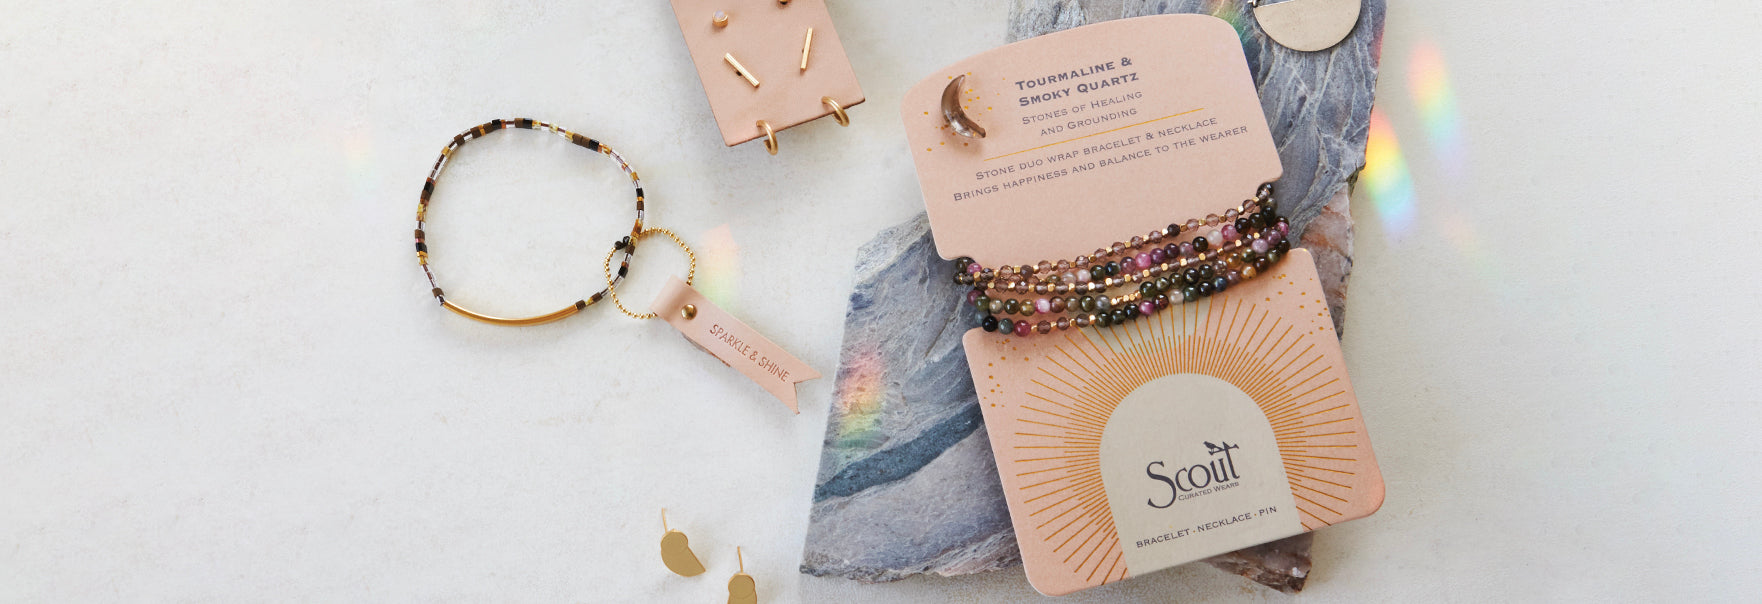 Scout Curated Wears Stone Duo Wrap Bracelet or Necklace Stone Power Convertible Jewelry Gift Giving Women